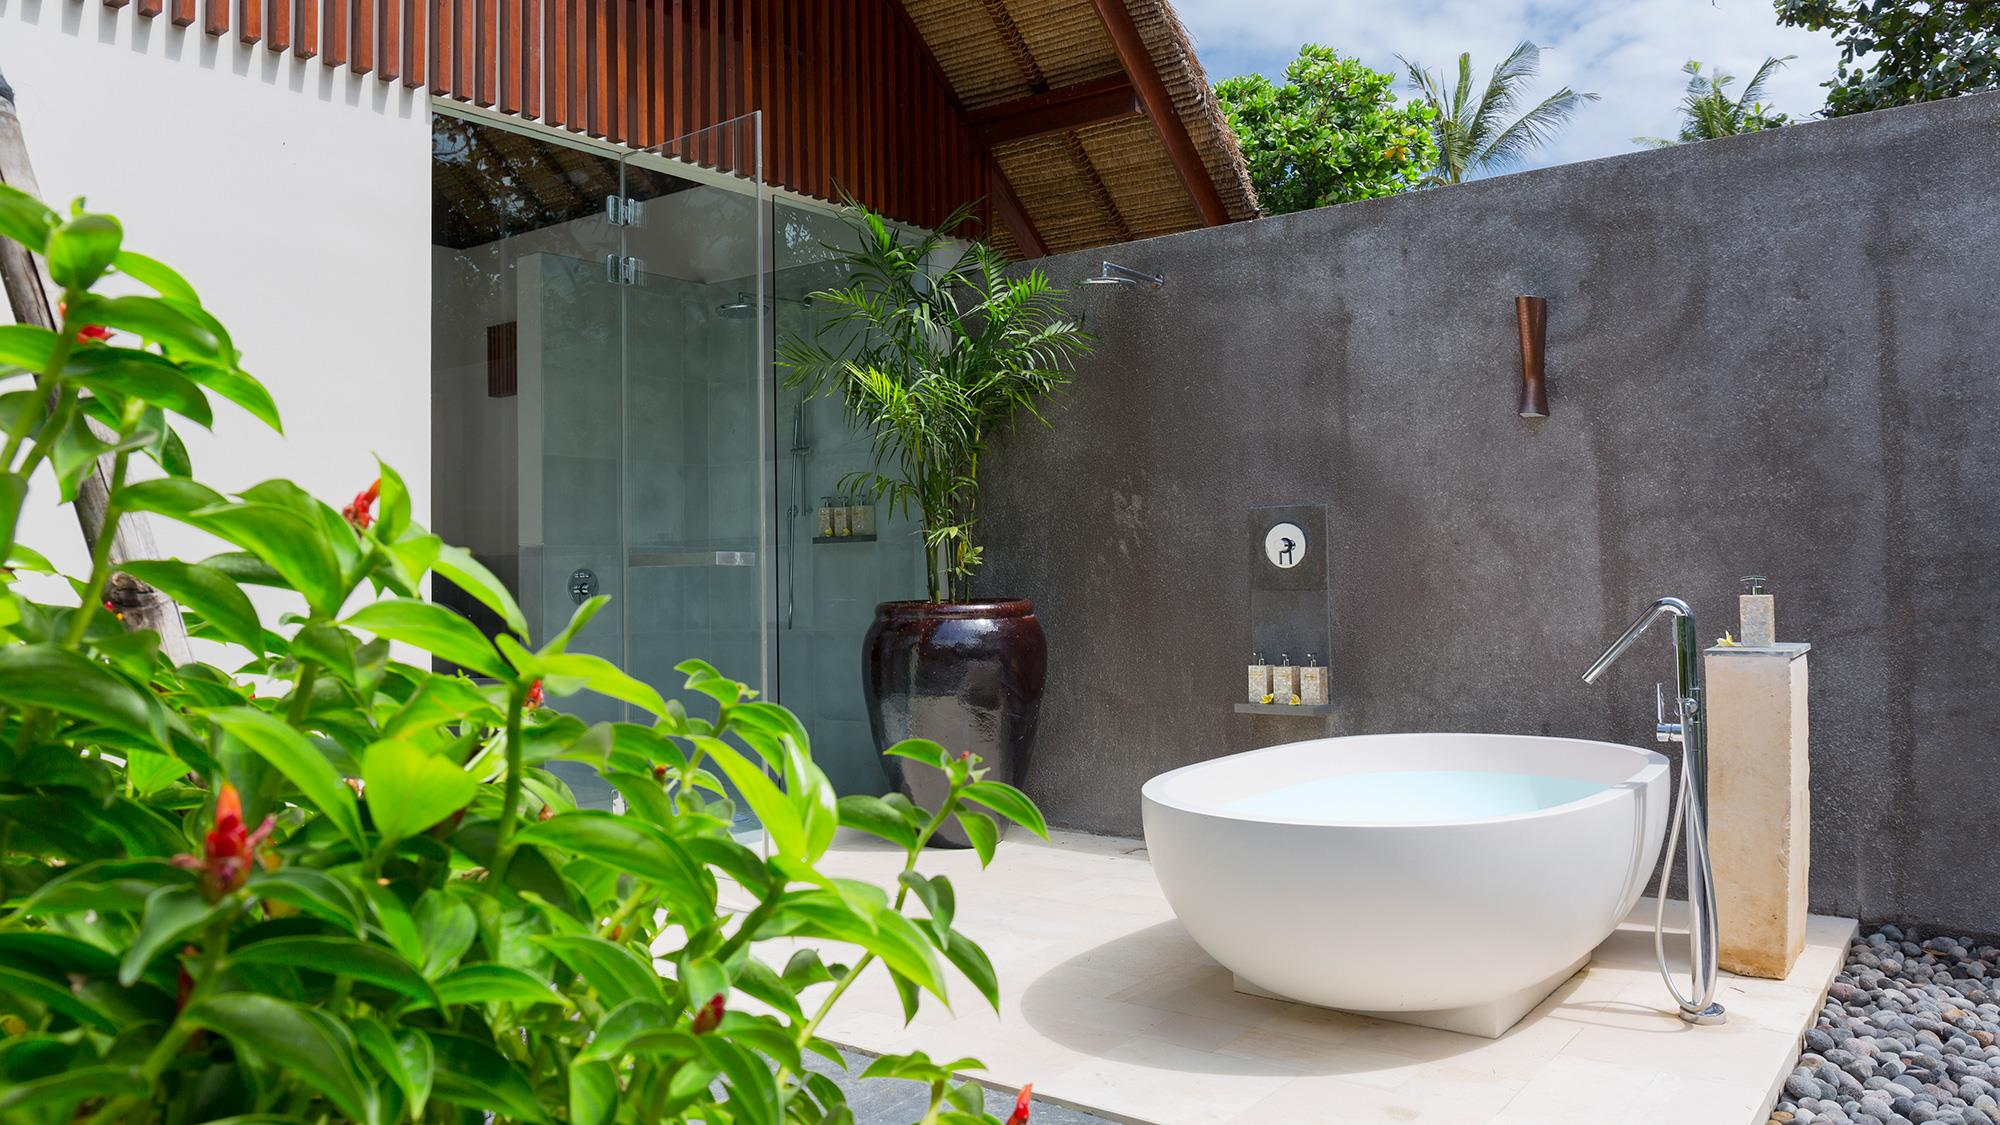 Outdoor Bathtub with Plants - Seseh Beach Villa 1 - Seseh, Bali